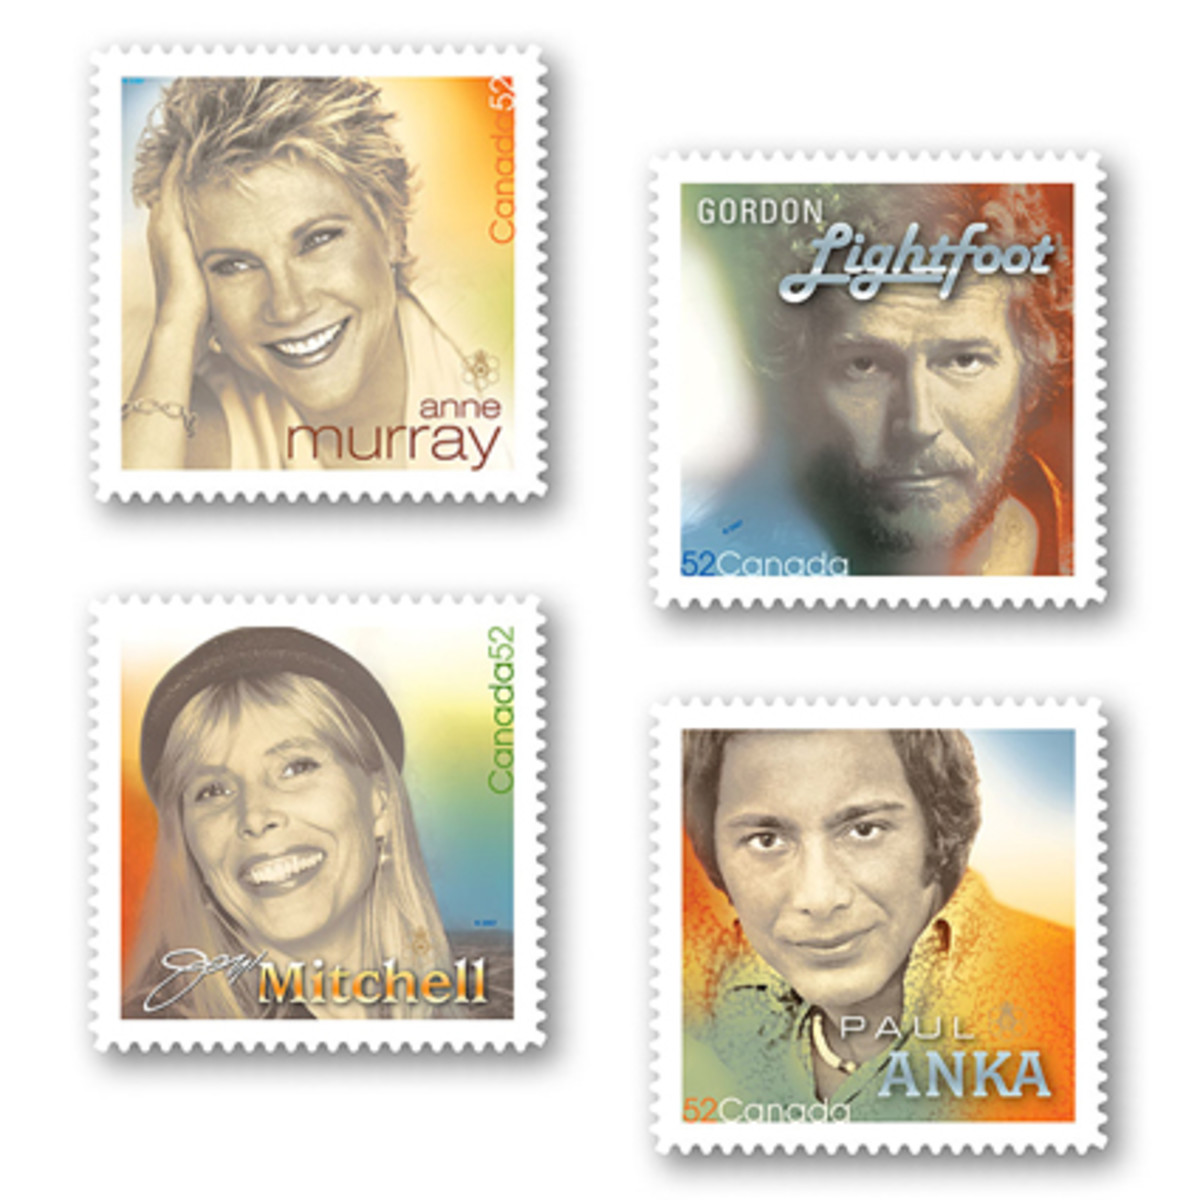 Canadian Recording Artists postage stamps issued June 29, 2007 by Canada Post